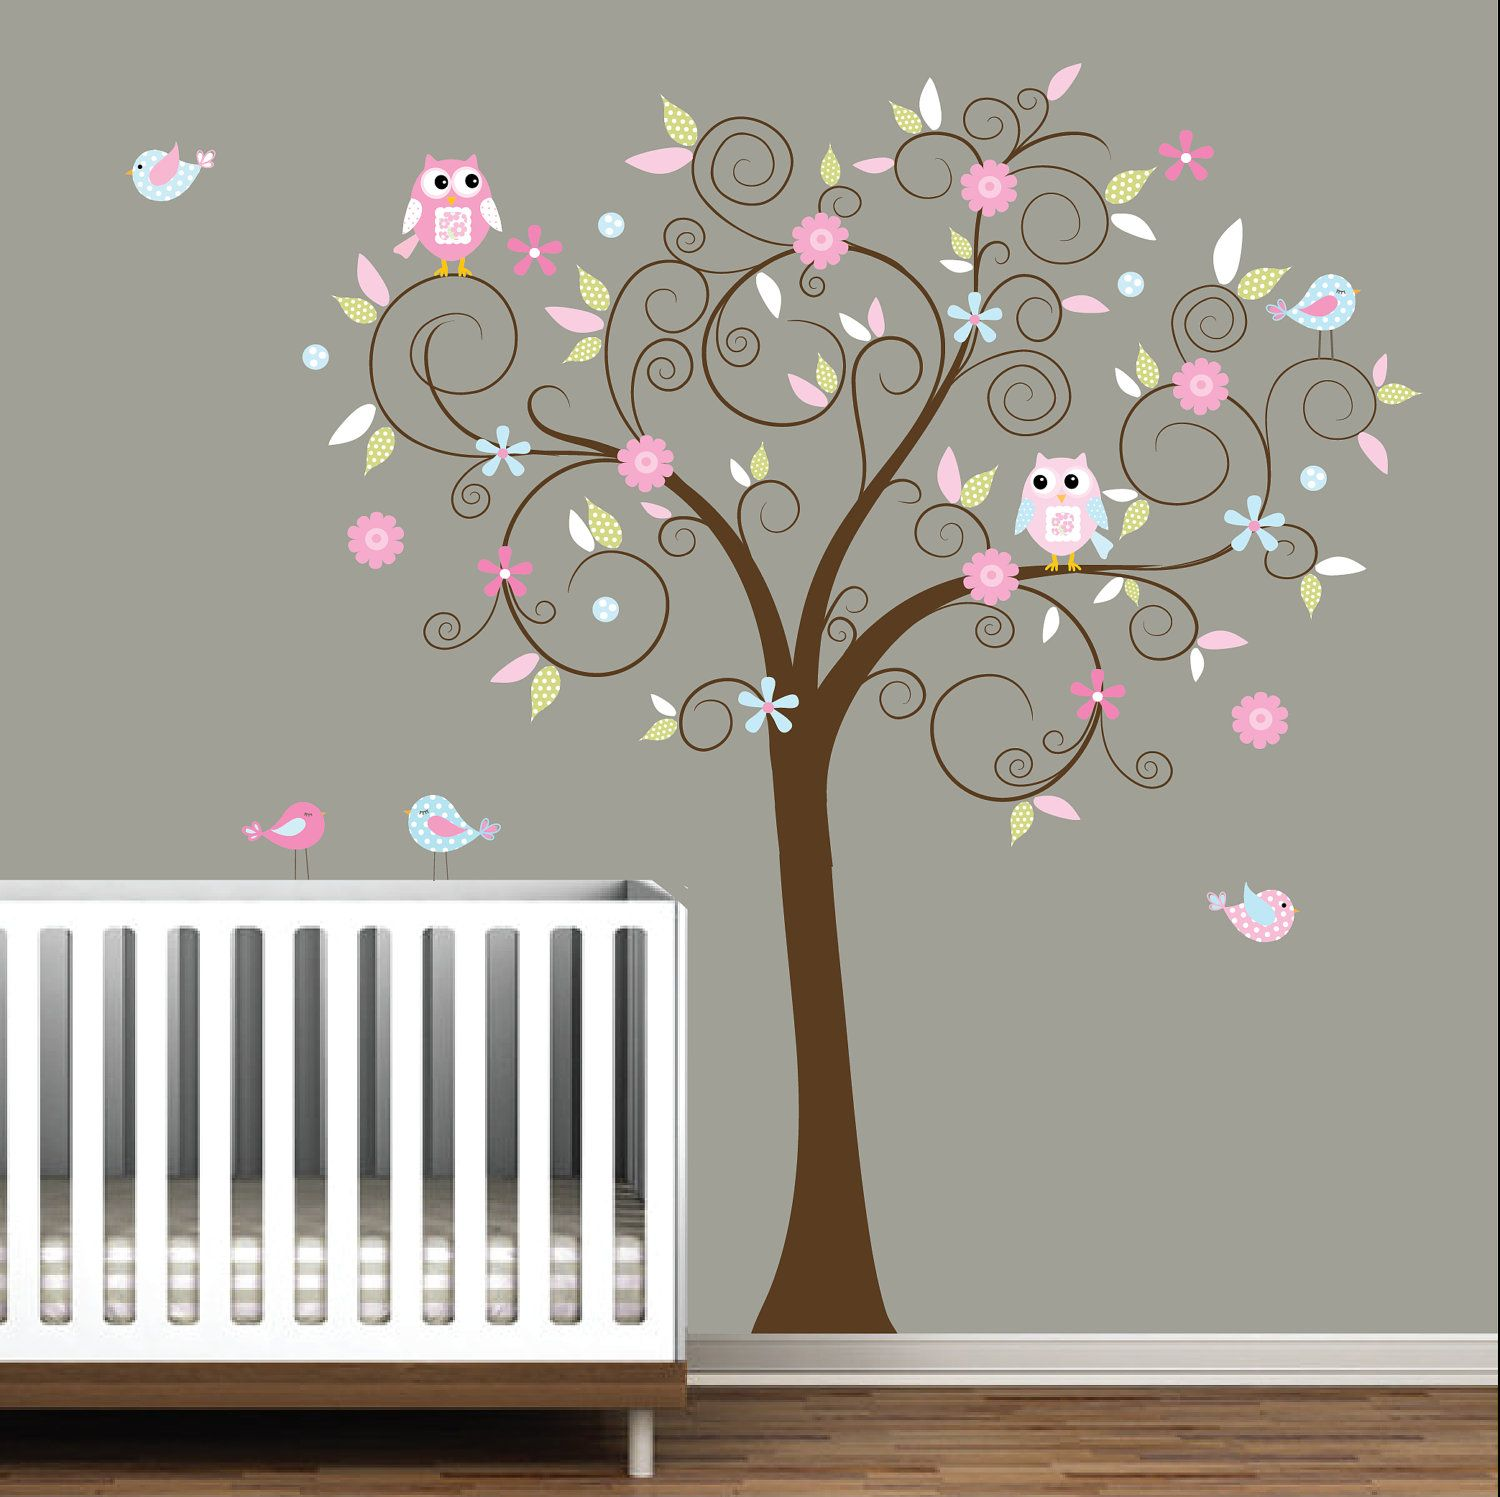 Decal Stickers Vinyl Wall Decals Nursery Tree 99 00 Via Etsy